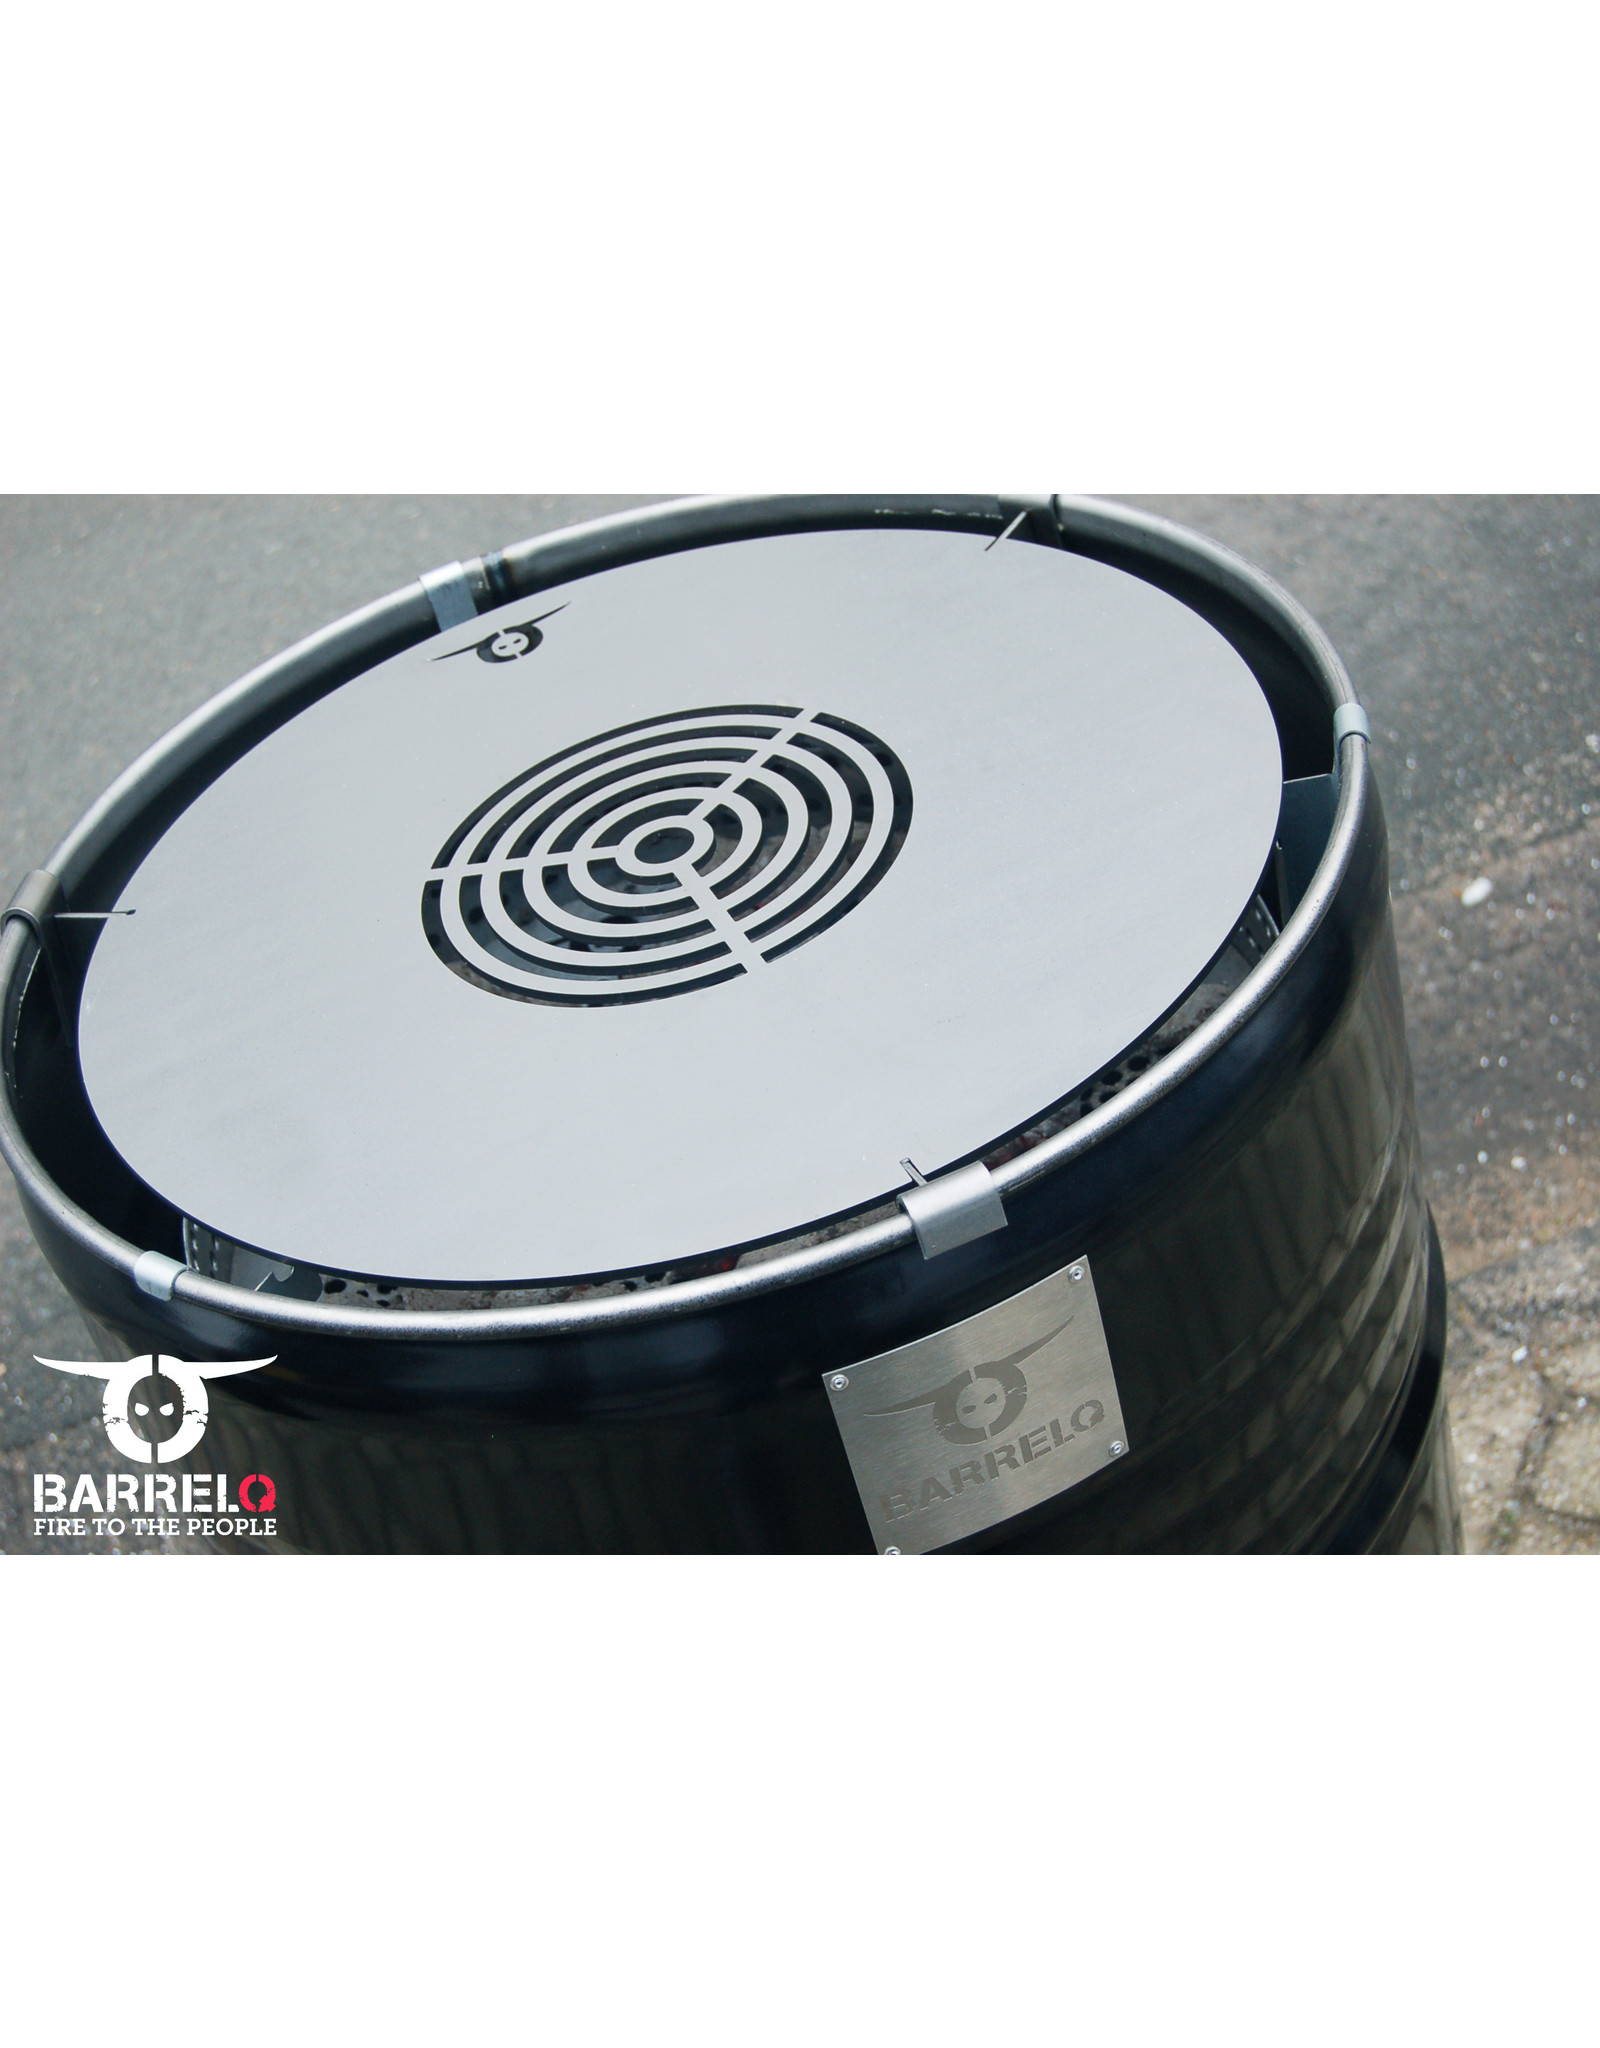 BarrelQ Teppanyaki grill-kookplaat add-on BarrelQ BIG barbecue